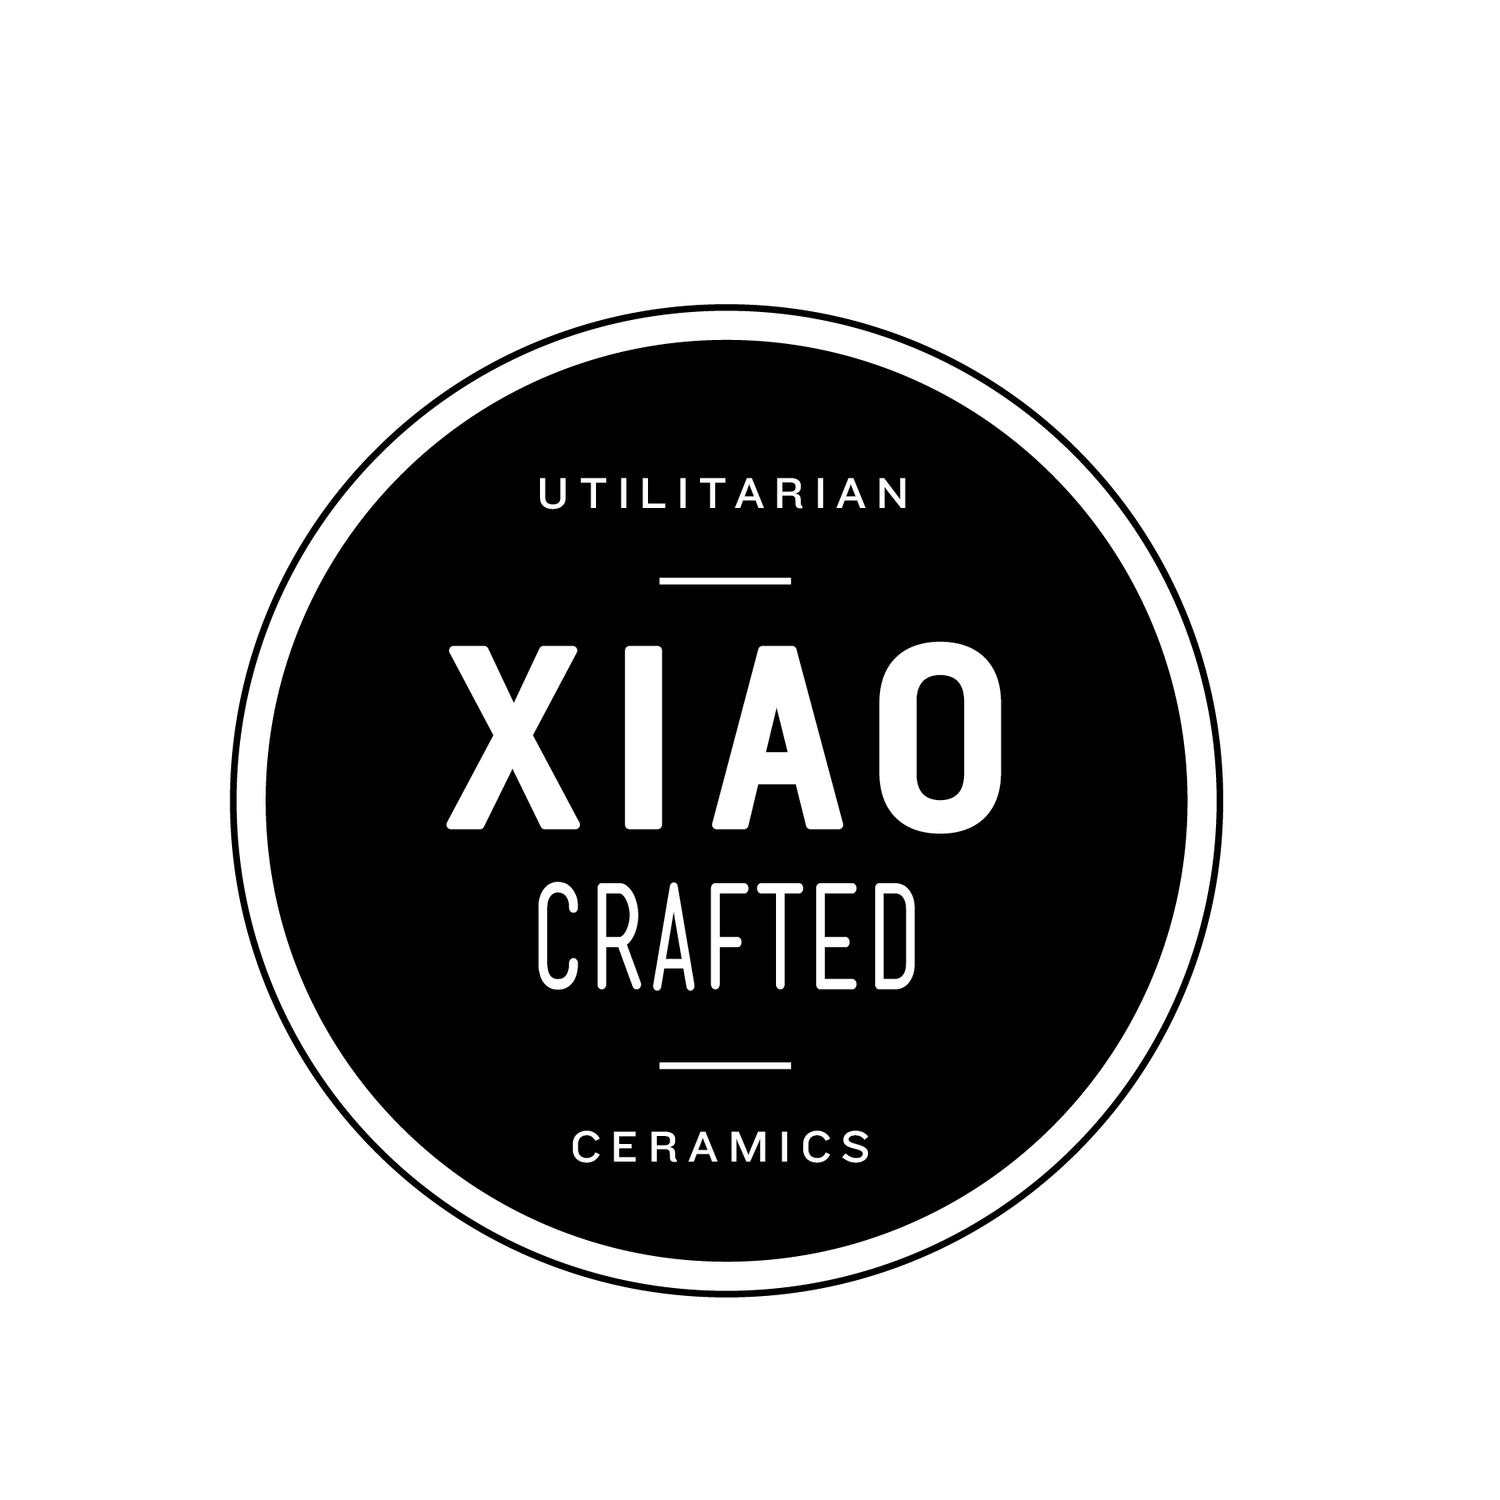 xiaocrafted